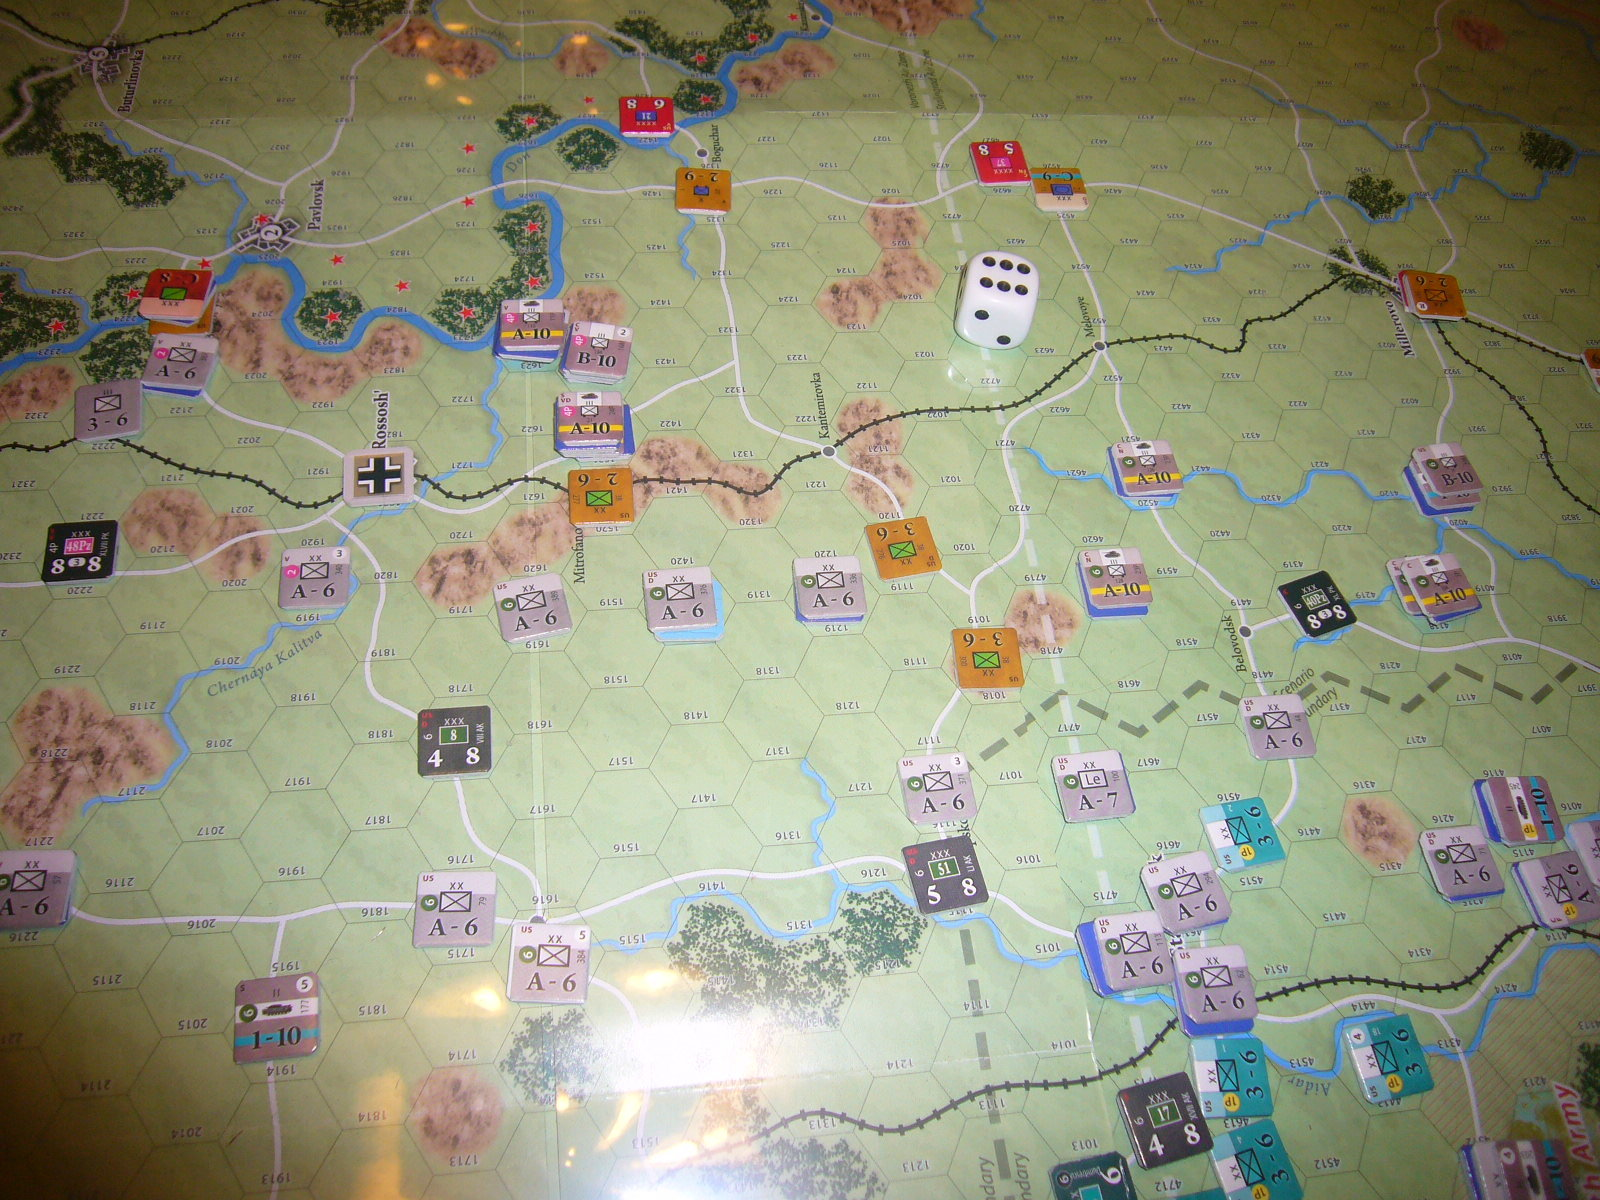 (Compass)FALL BLAU: Army Group South, June to December 1942 青作戦:史実の7月キャンペーンお試し5人戦➌_b0173672_19583114.jpg